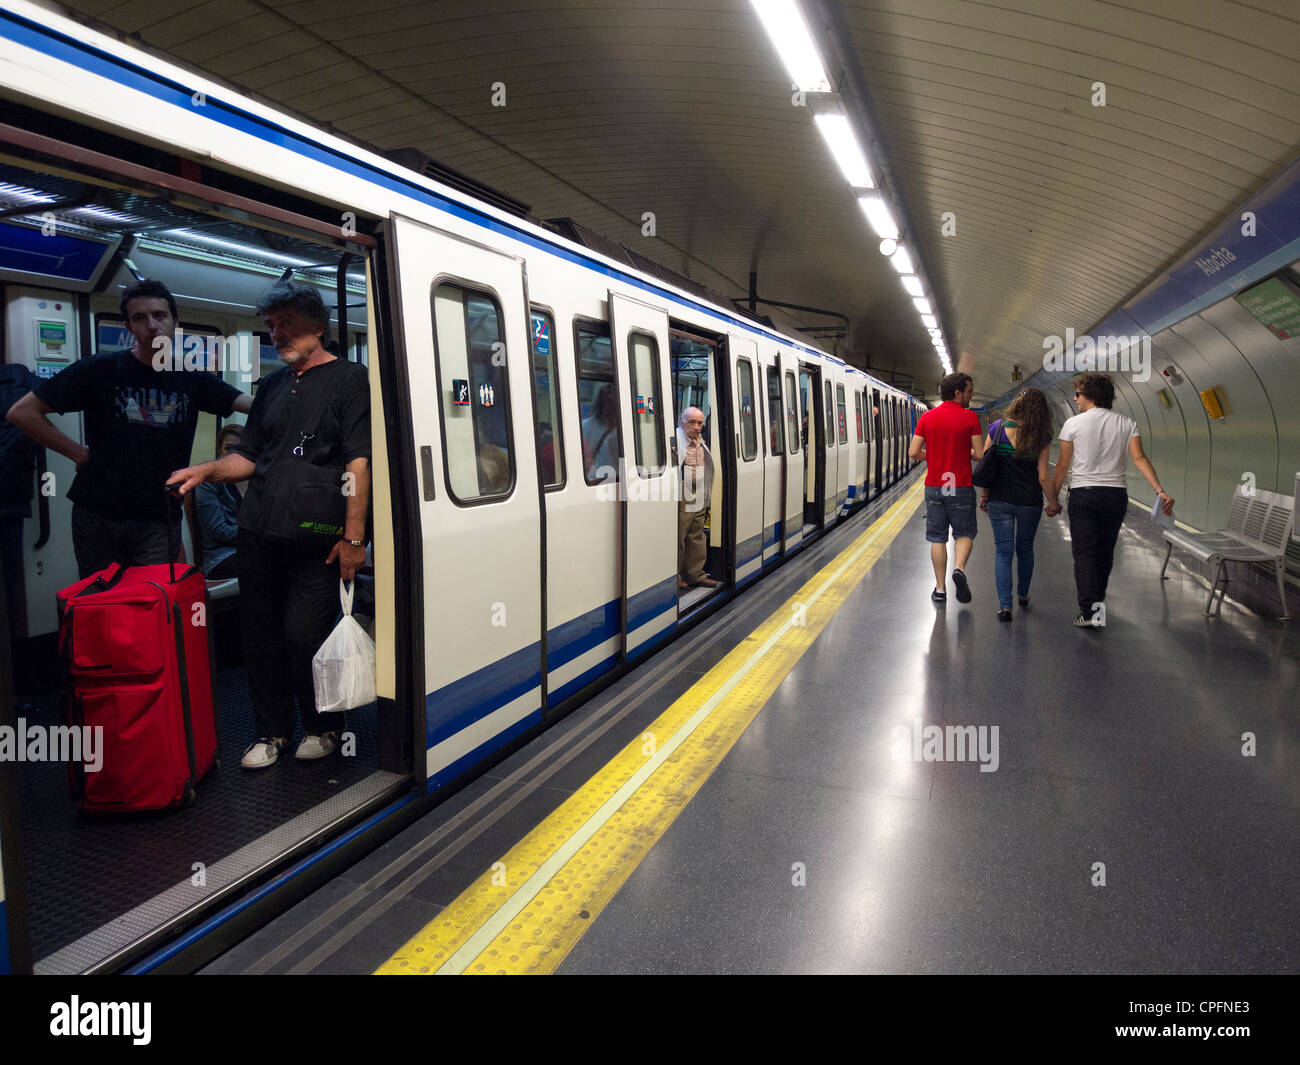 Train carriage at underground metro station platform in Madrid ...